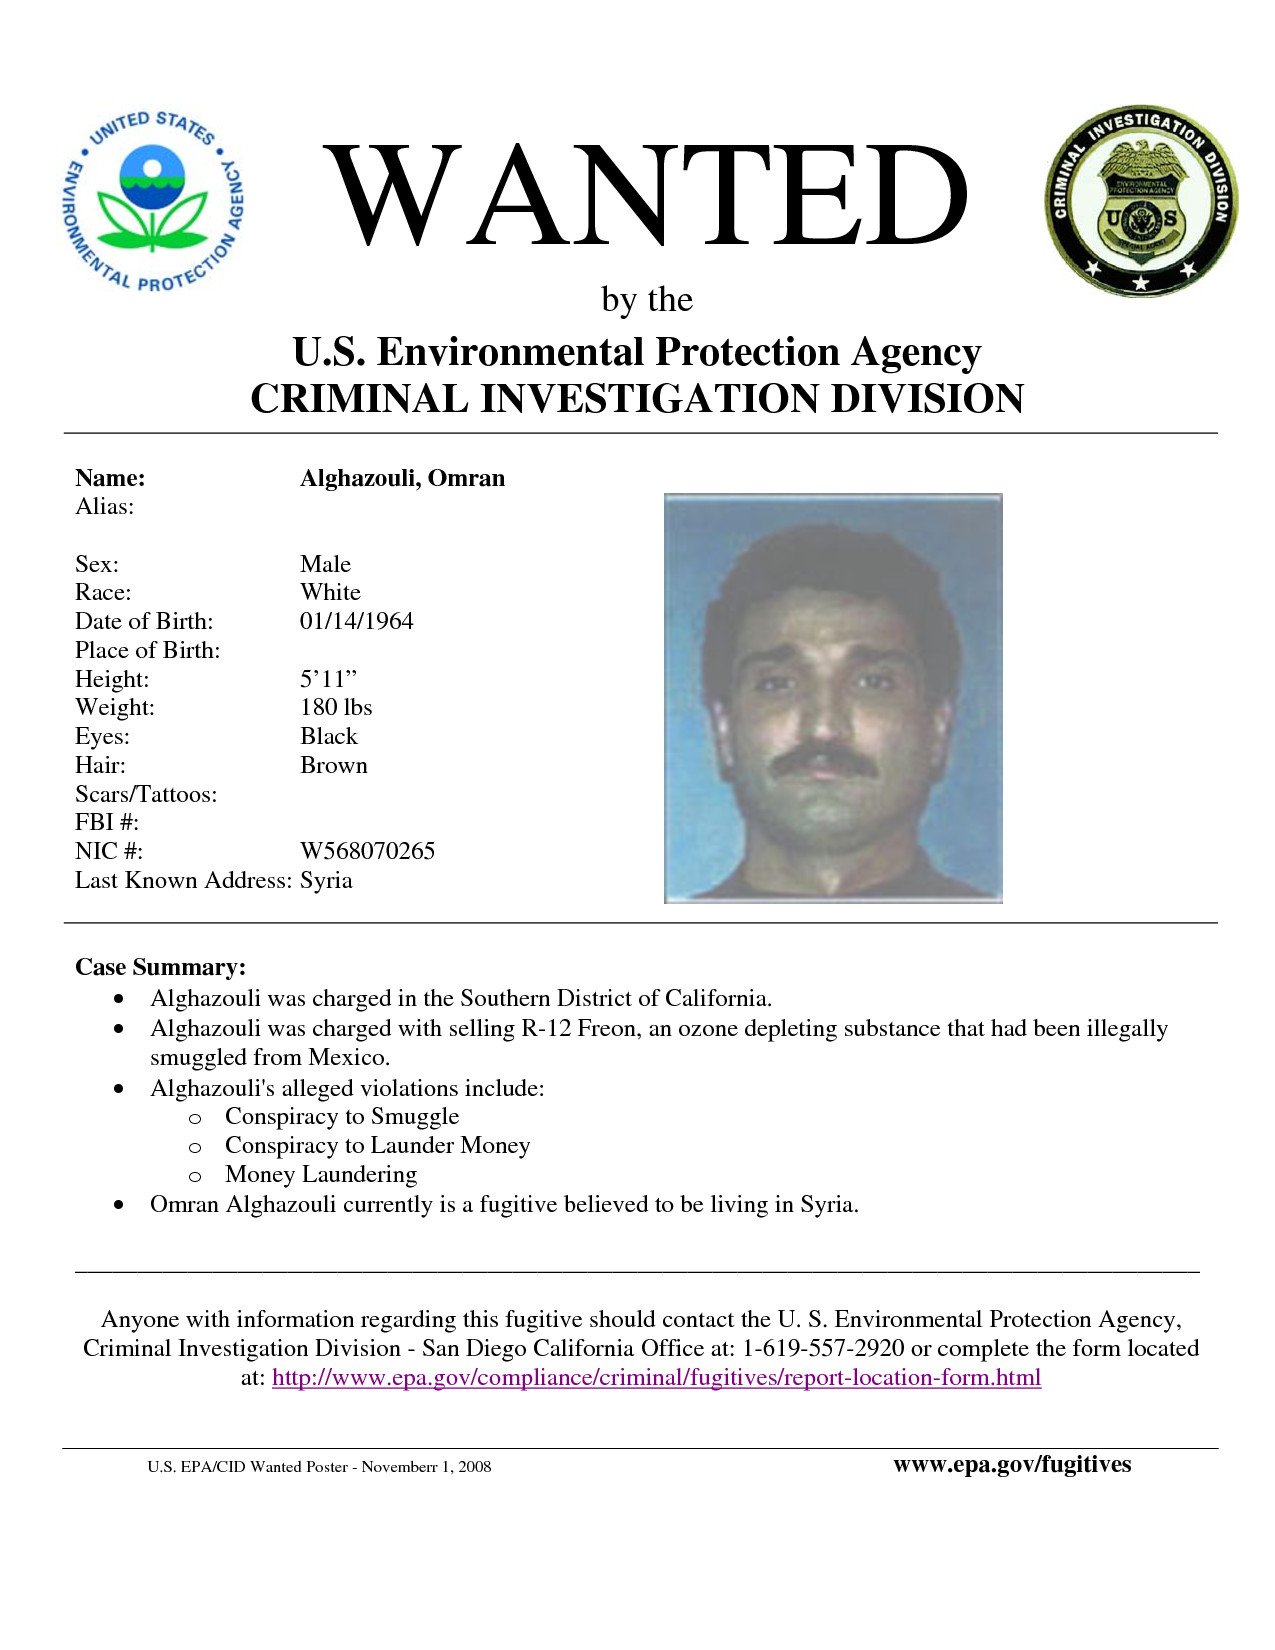 Fbi Wanted Poster Template Best S Of Fbi Wanted Poster Template Fbi Most